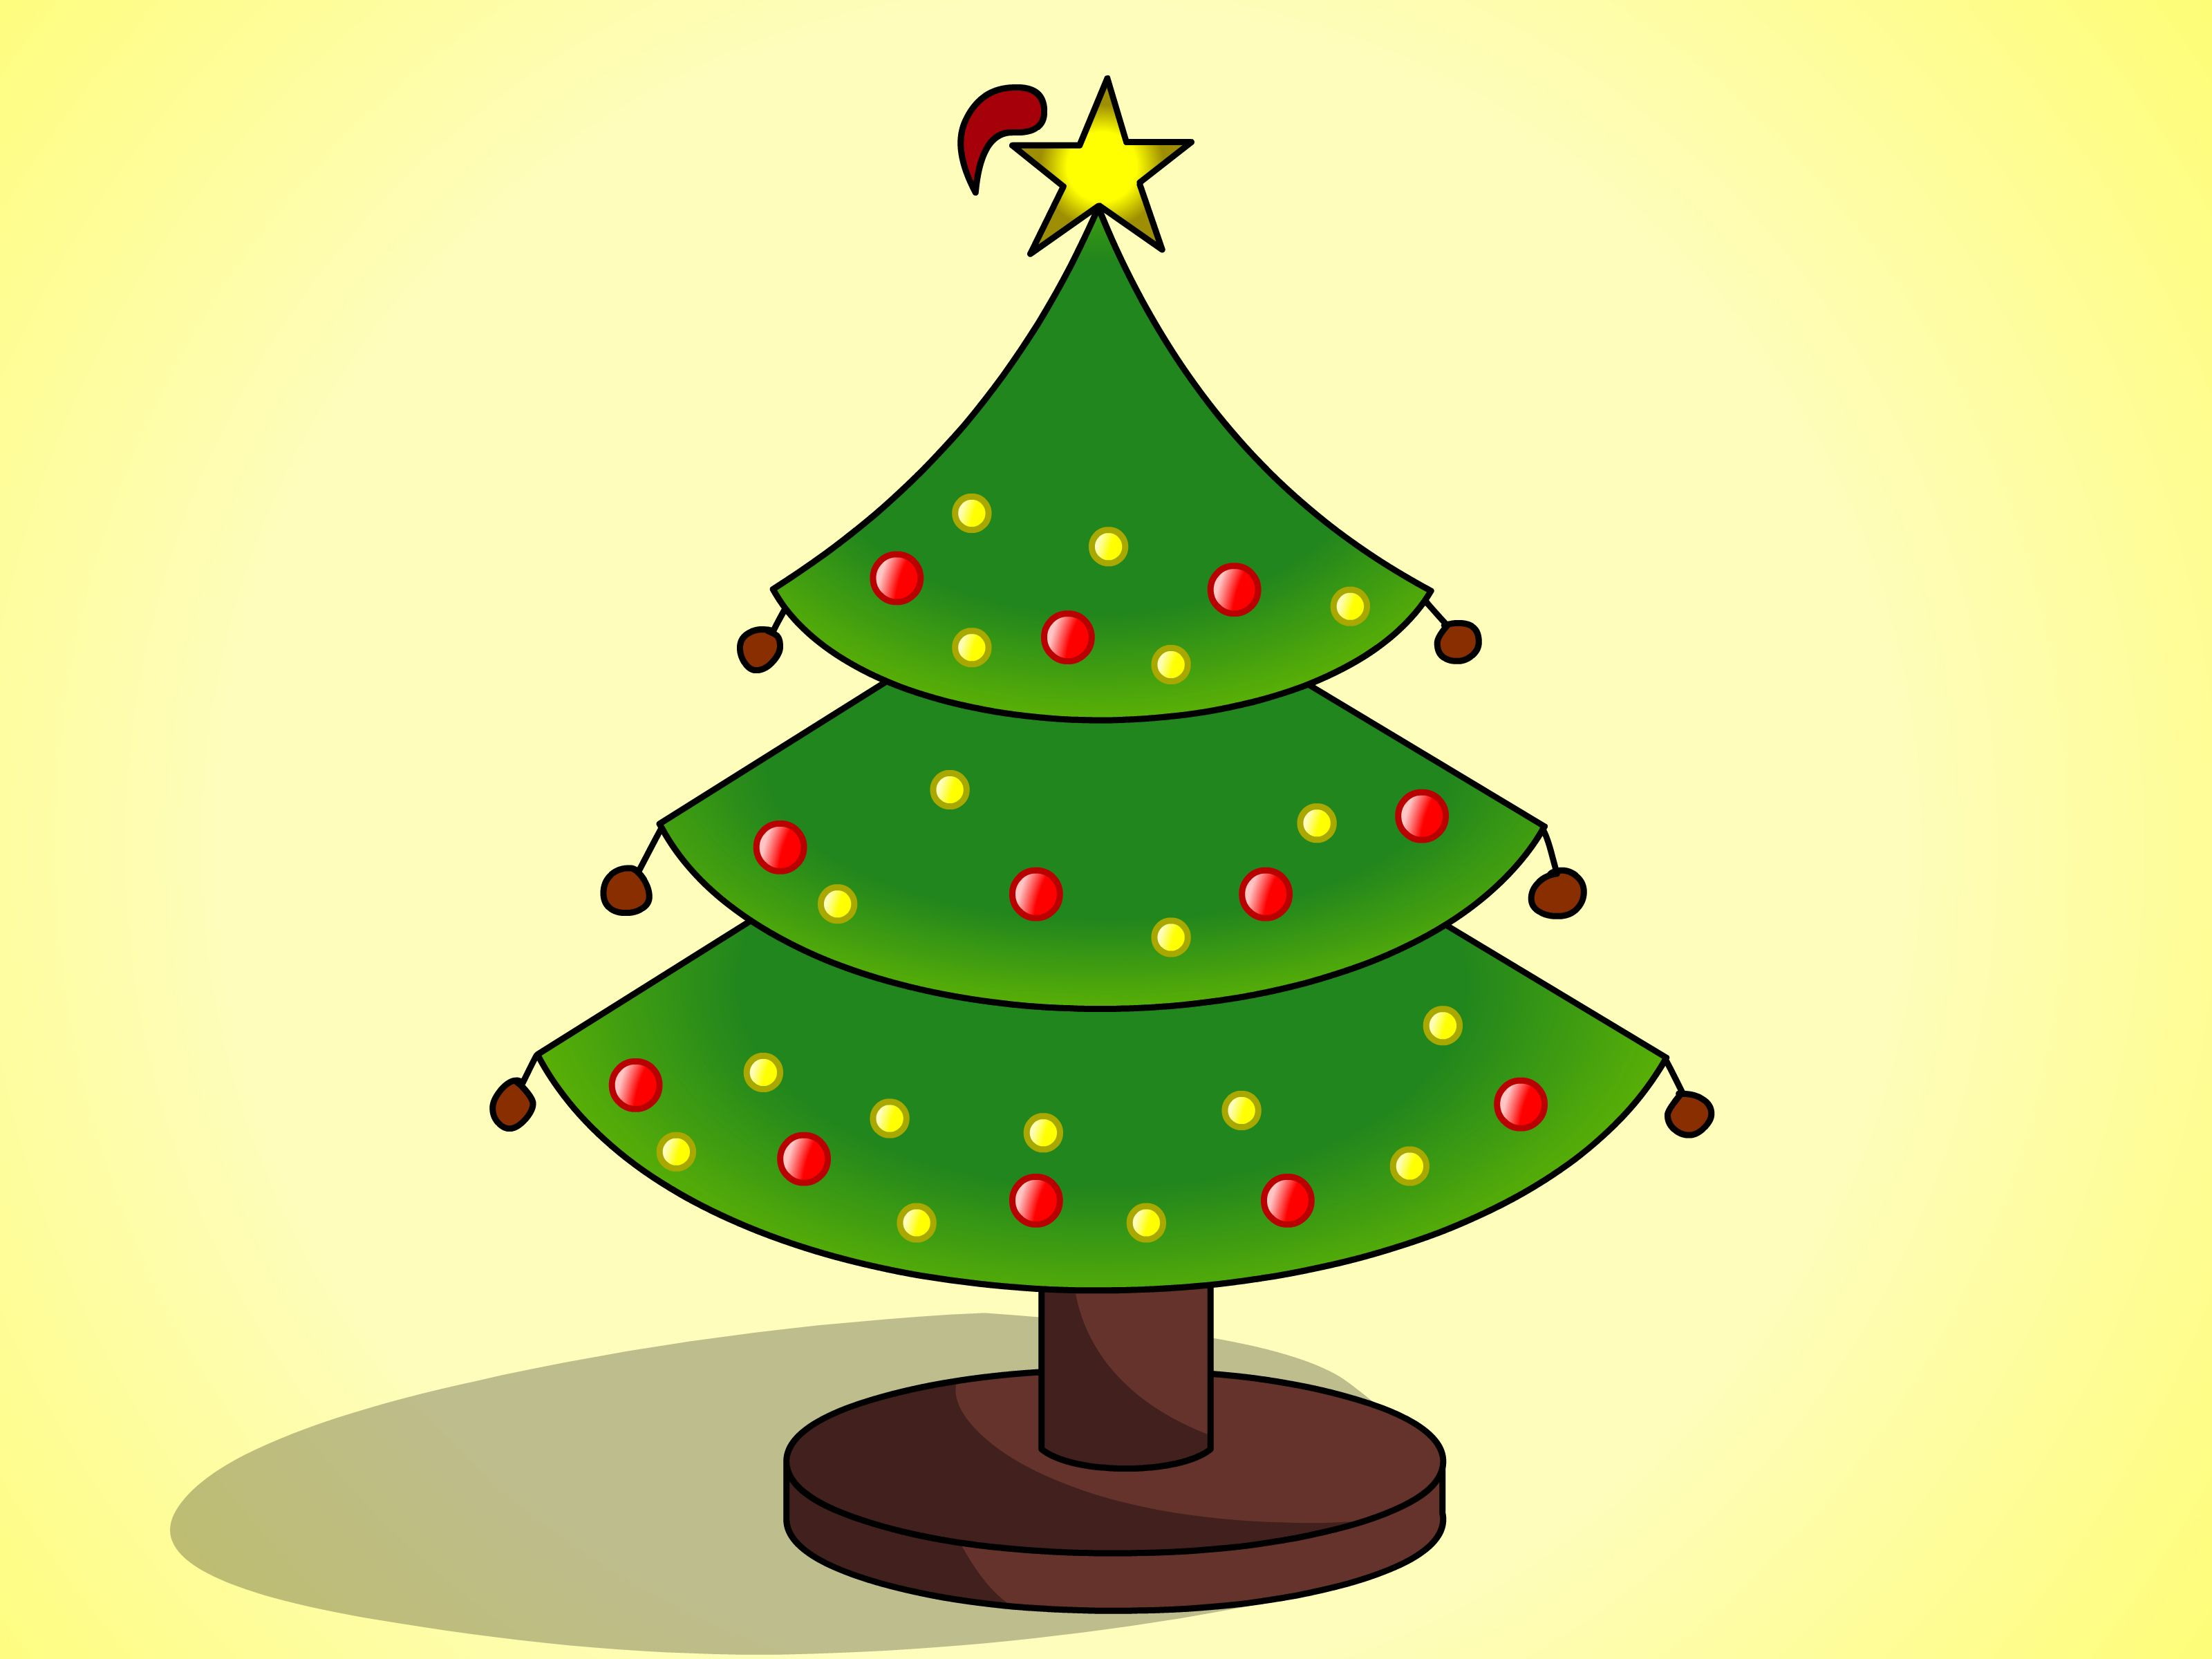 3200x2400 Xmas Tree Picture For Drawing Merry Christmas Xmas